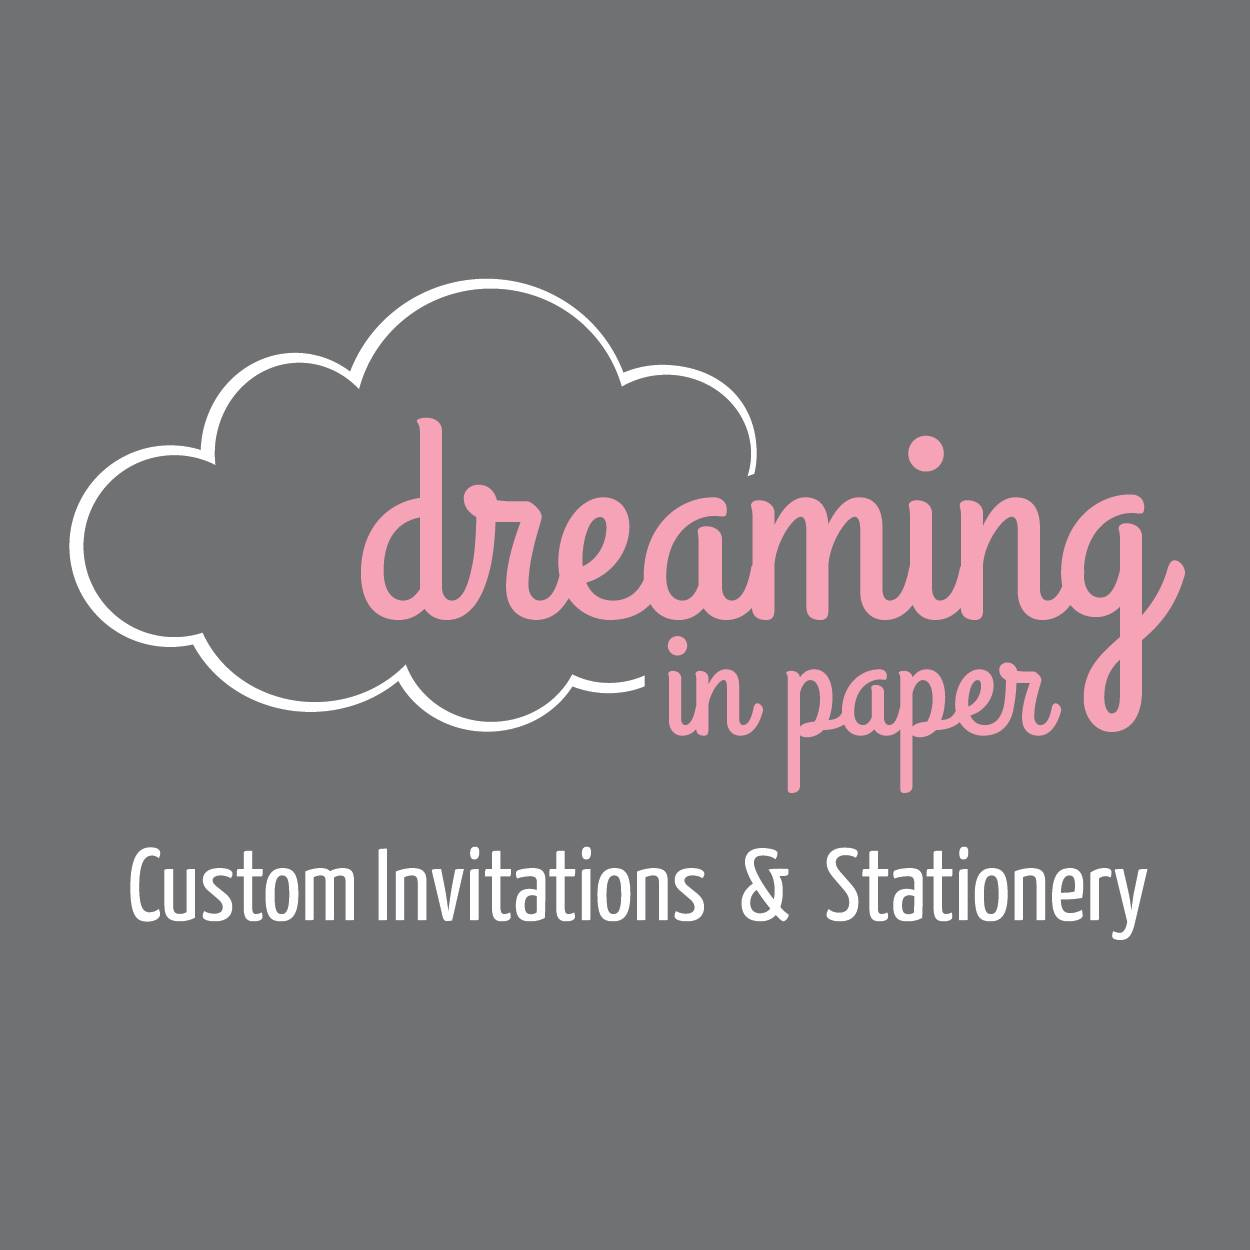 Company logo of Dreaming In Paper